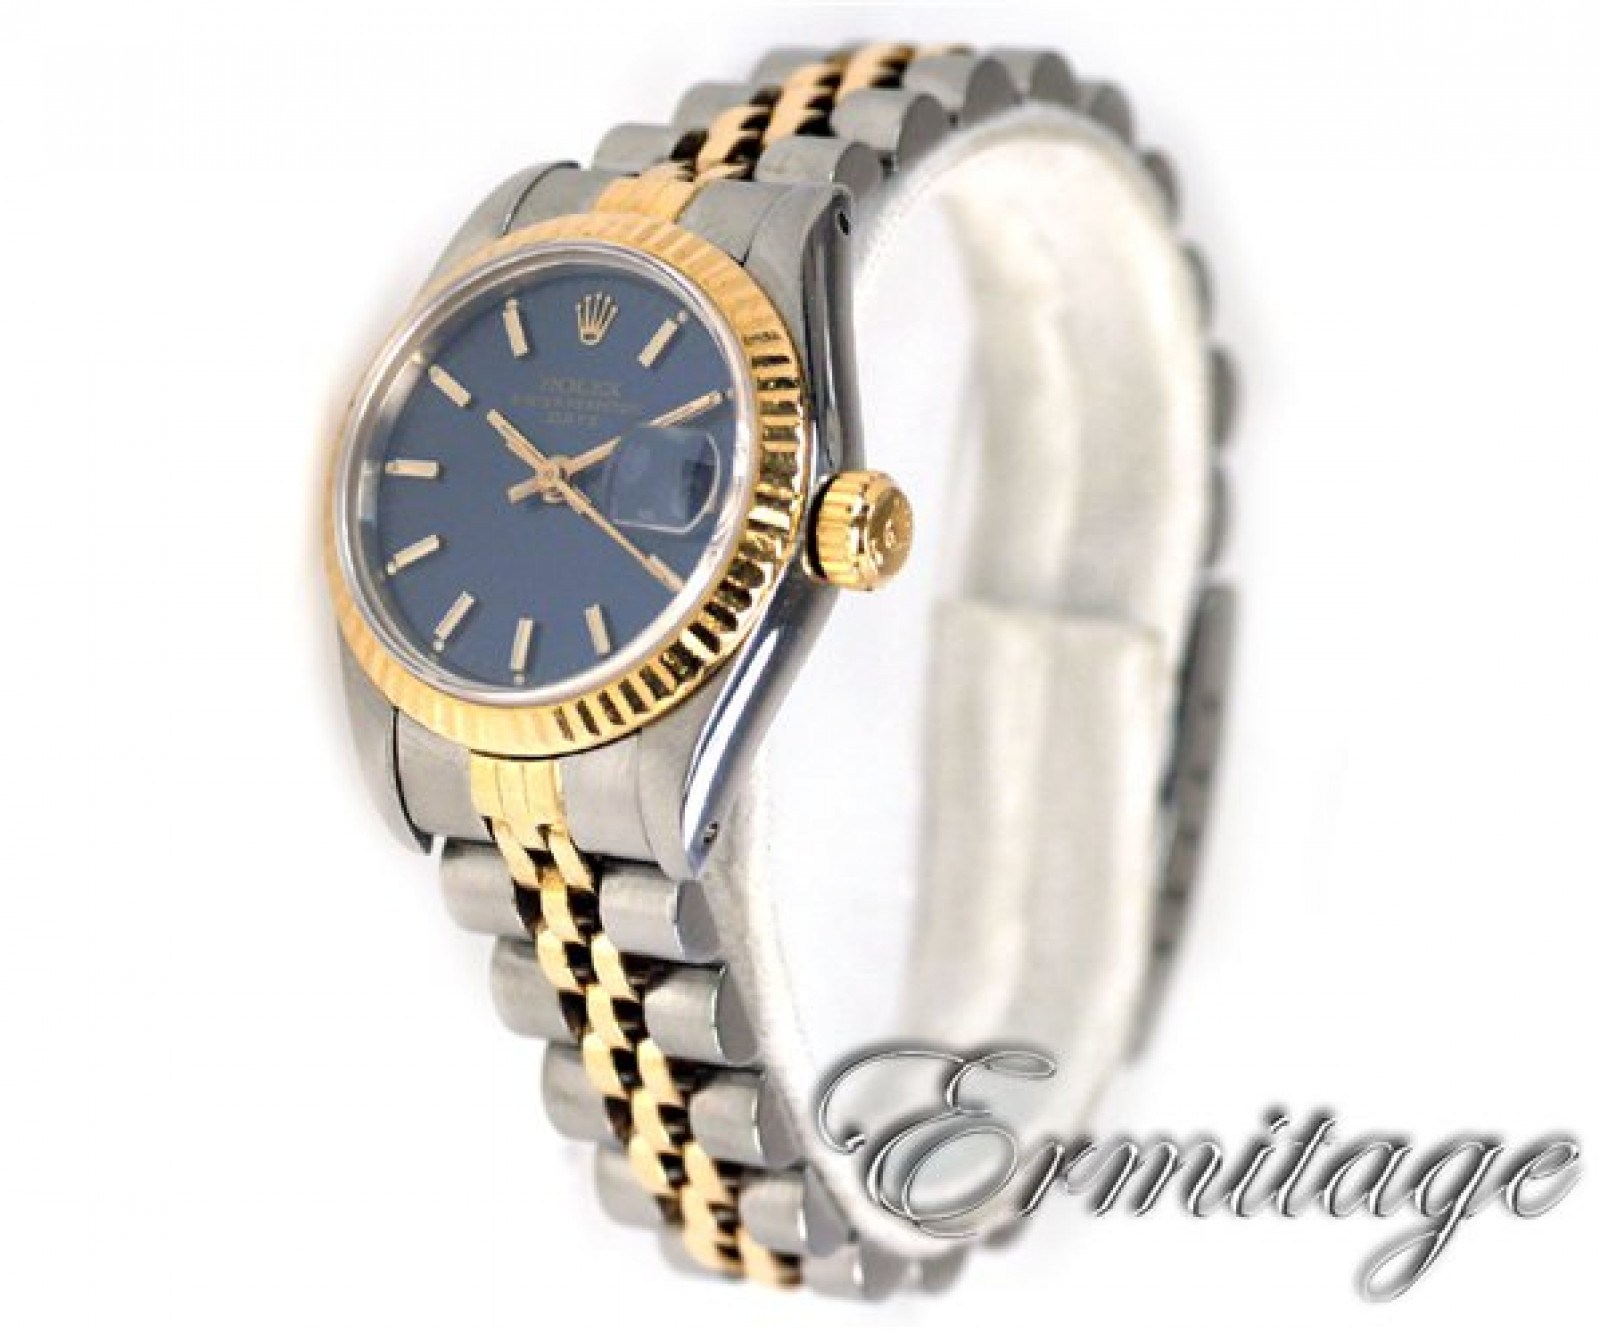 Rolex Datejust 69173 Gold & Steel With Blue Dial